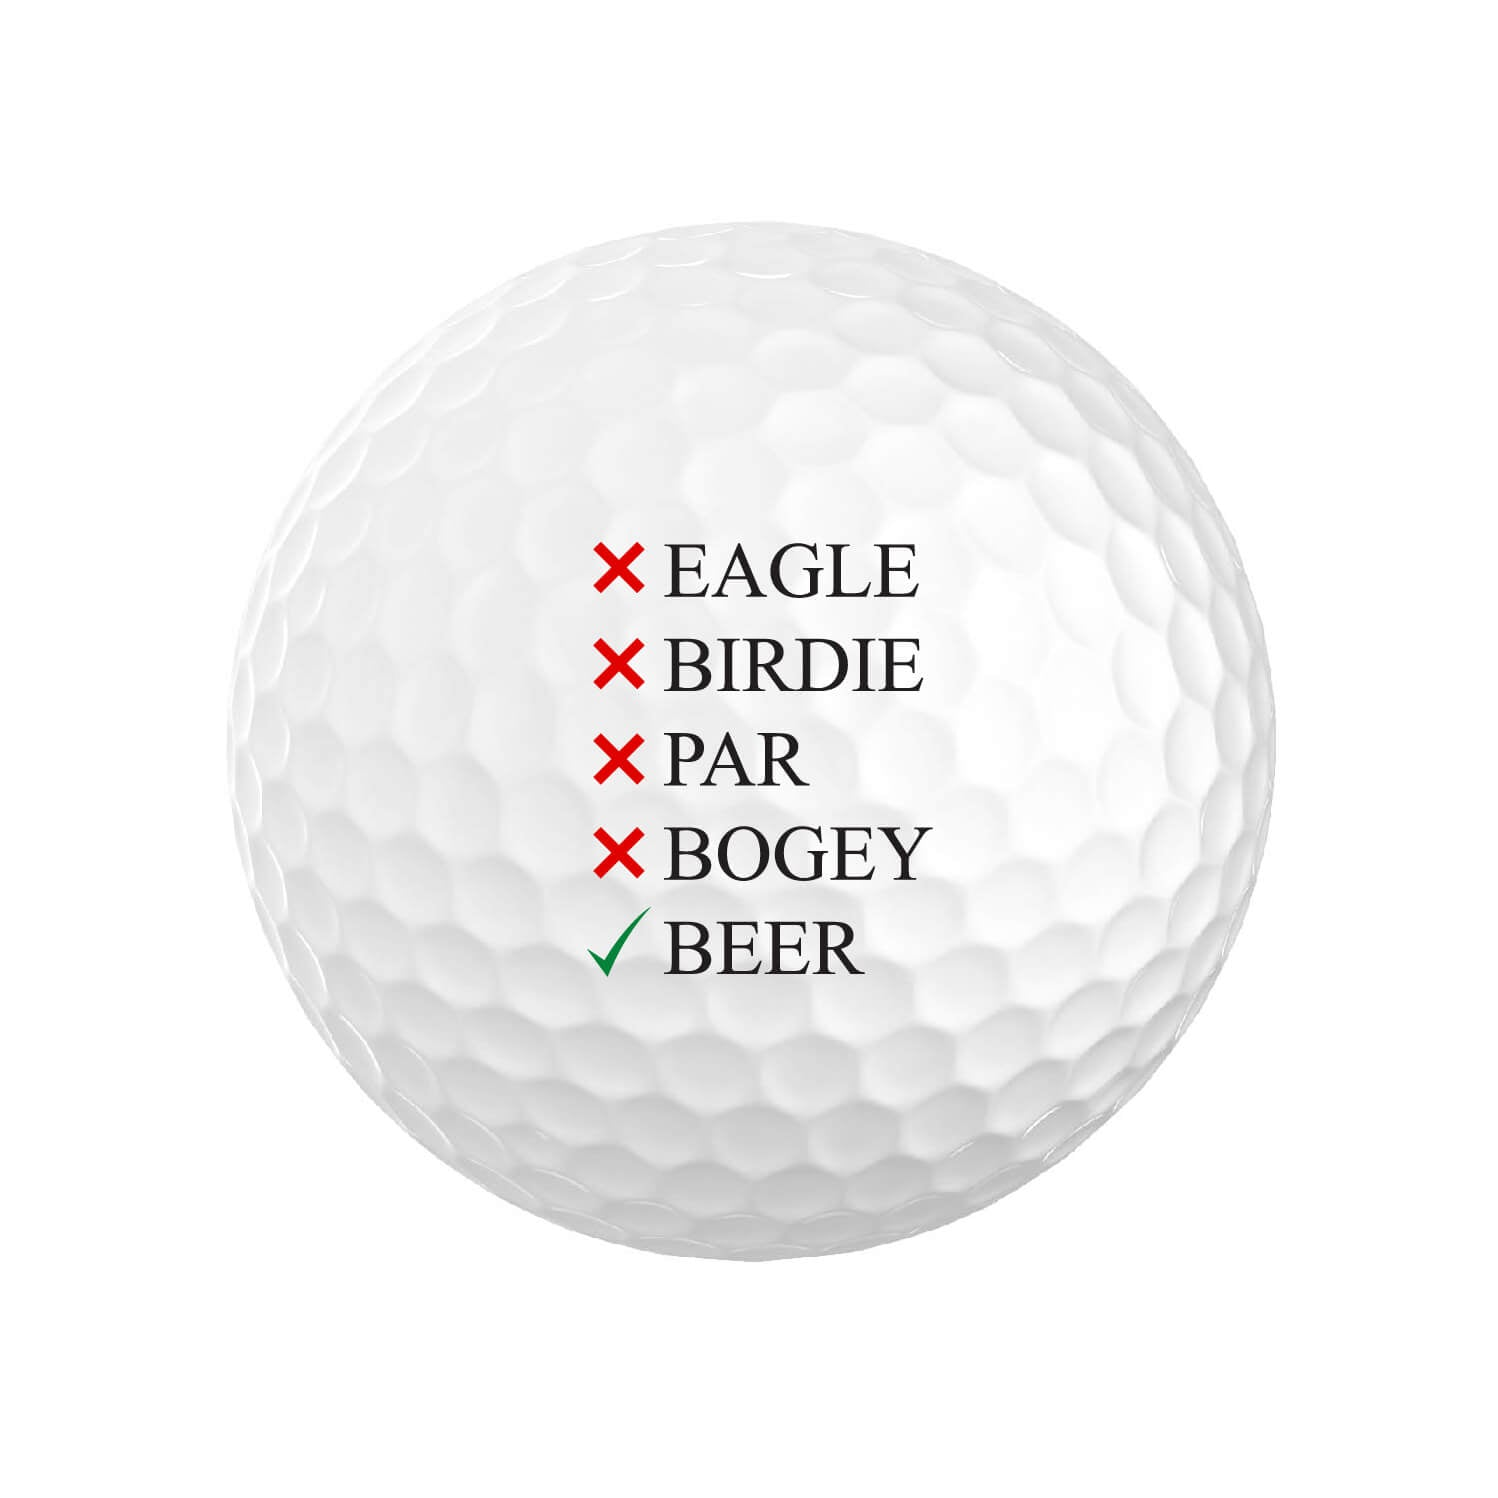 Eagle Birdie Par Bogey Beer Golf Balls